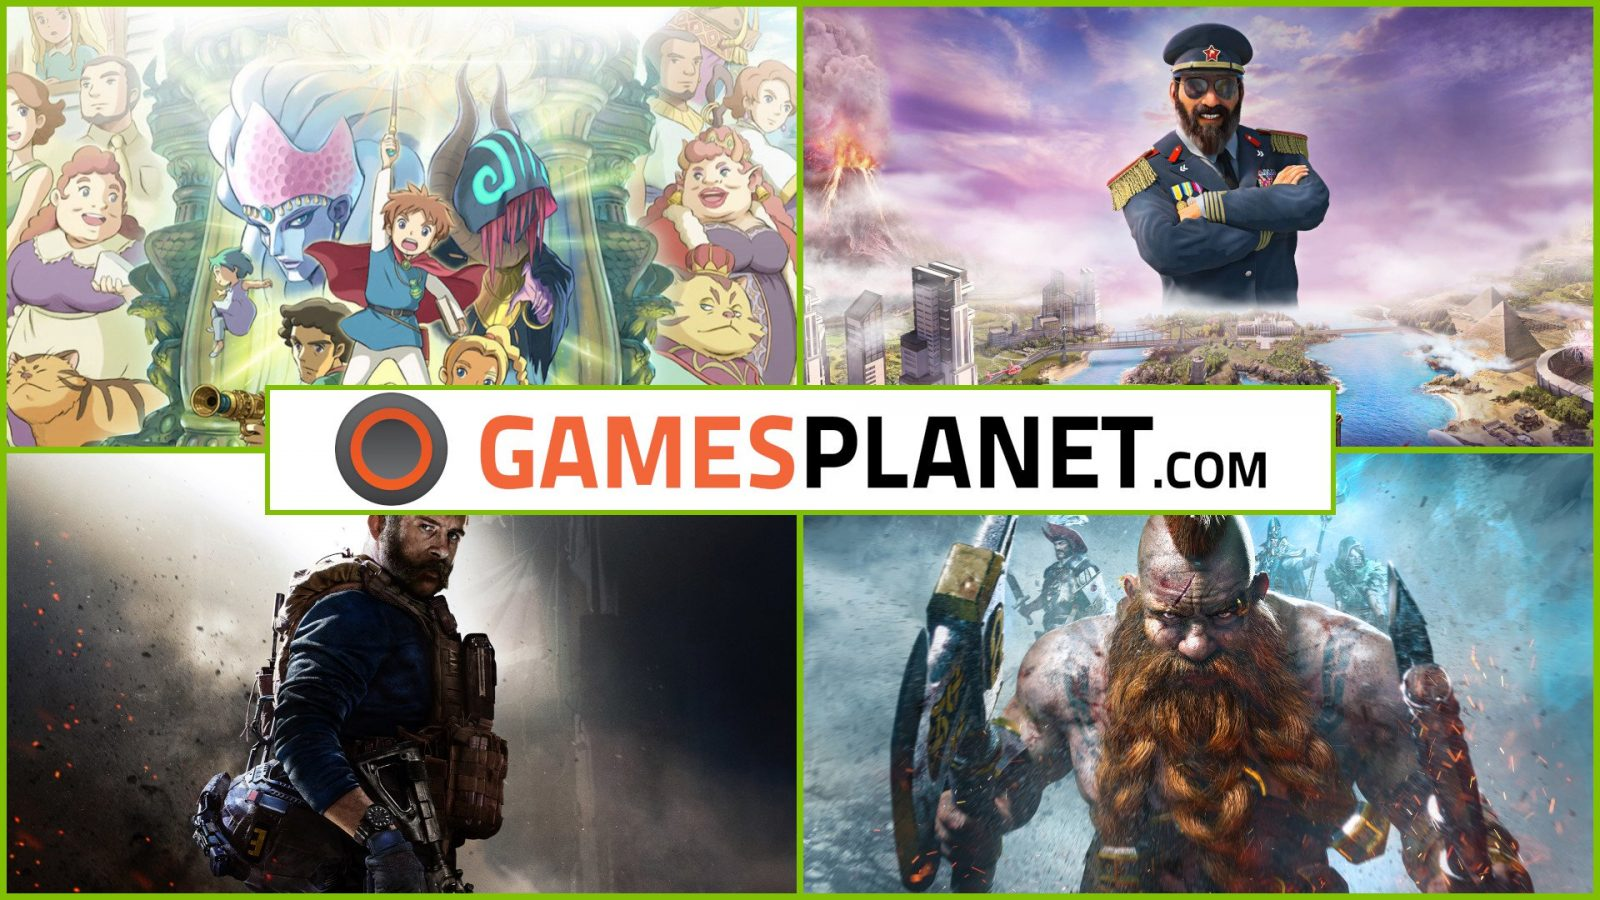 Gamesplanet Weekend Deals – New Releases, RPGs, And Indies, Oh My